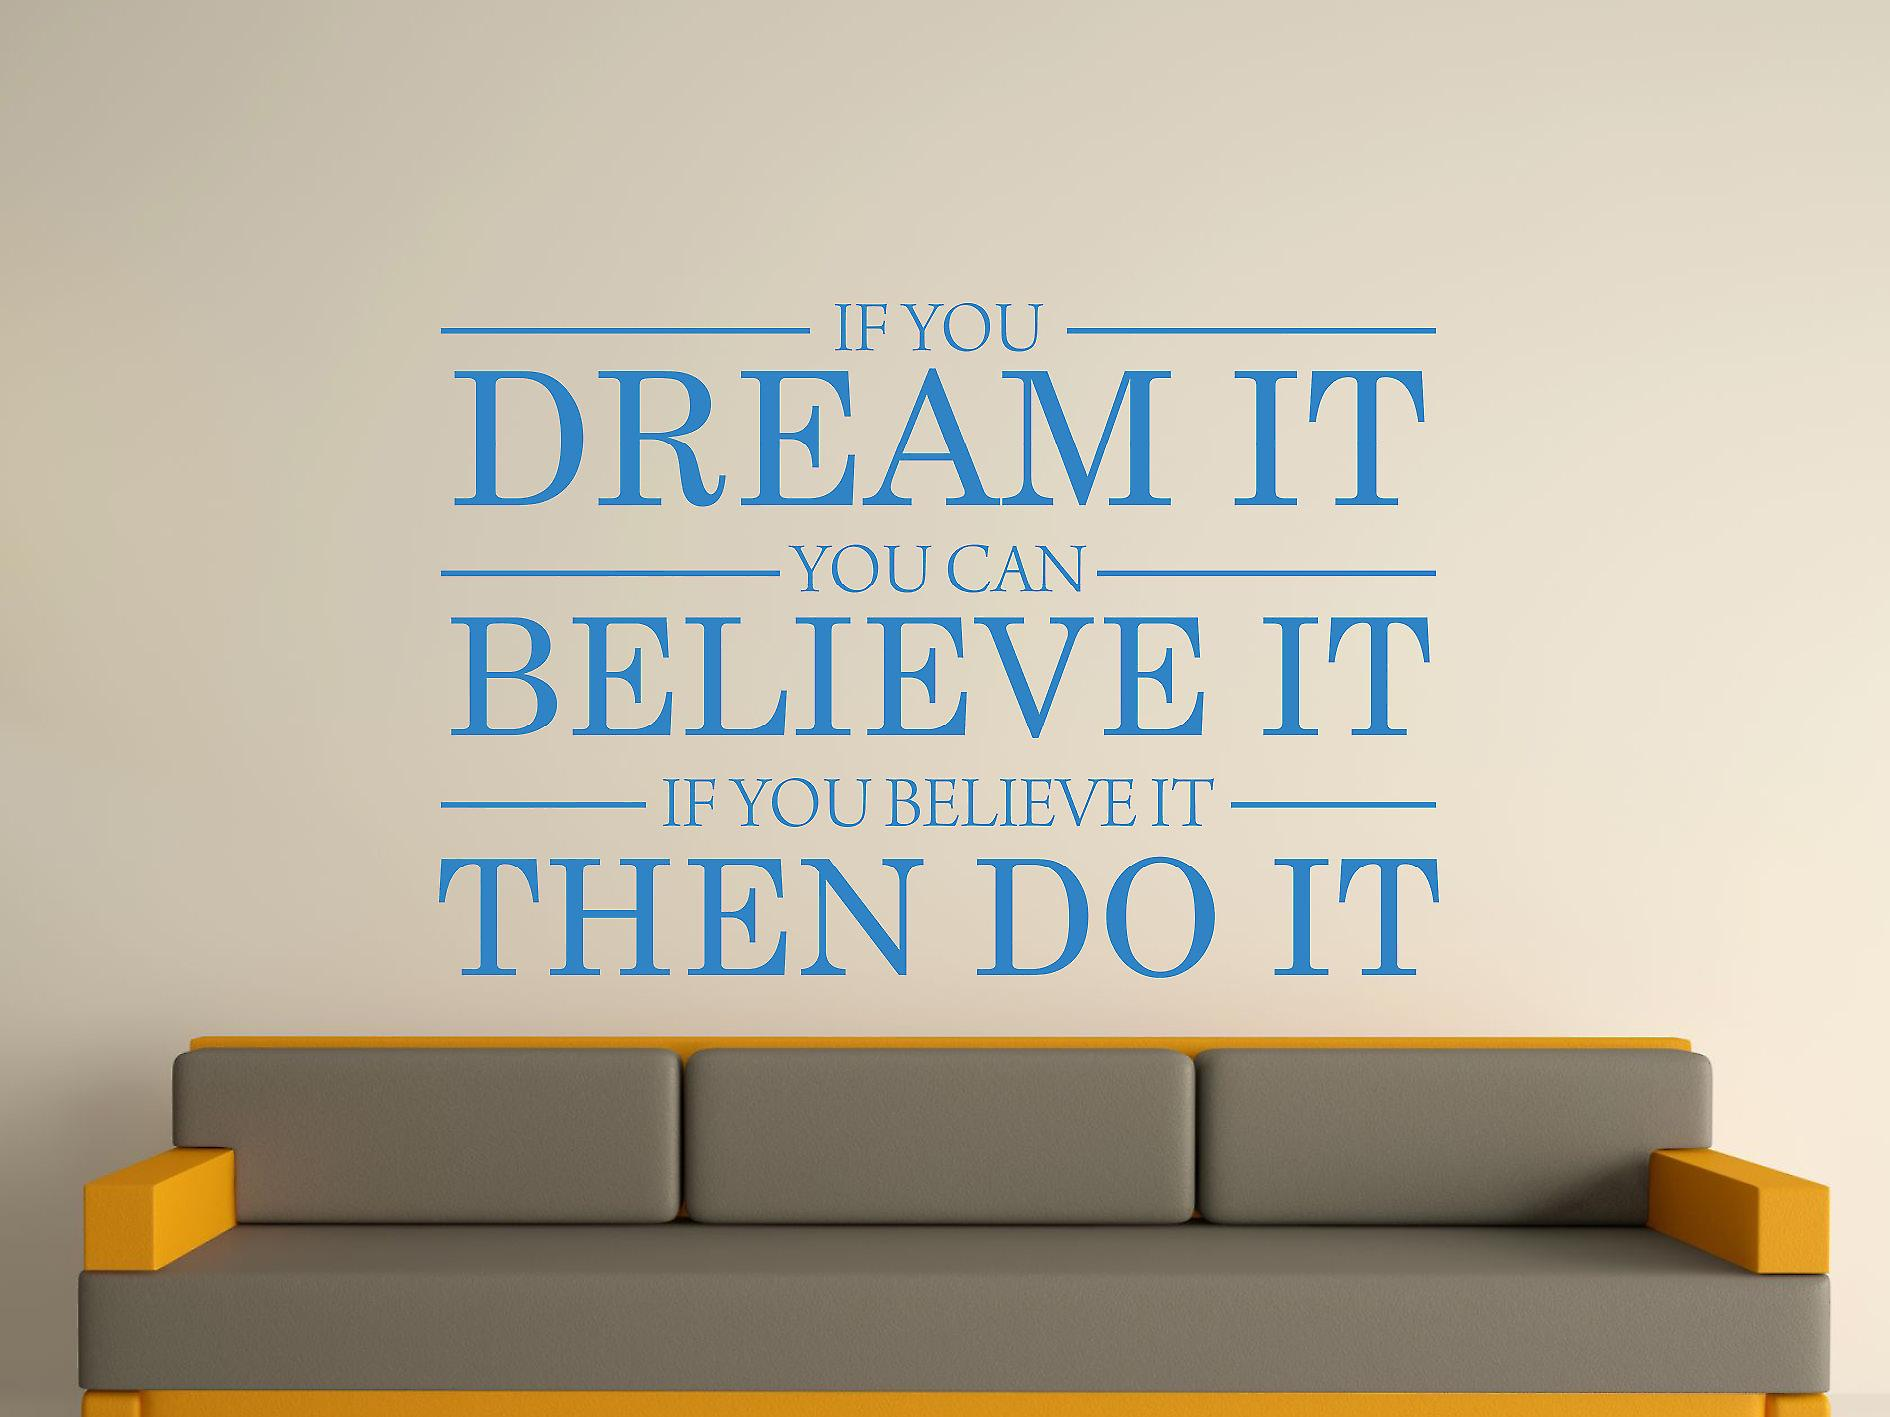 Dream It Believe It Do It Wall Art Sticker - Olympic Blue